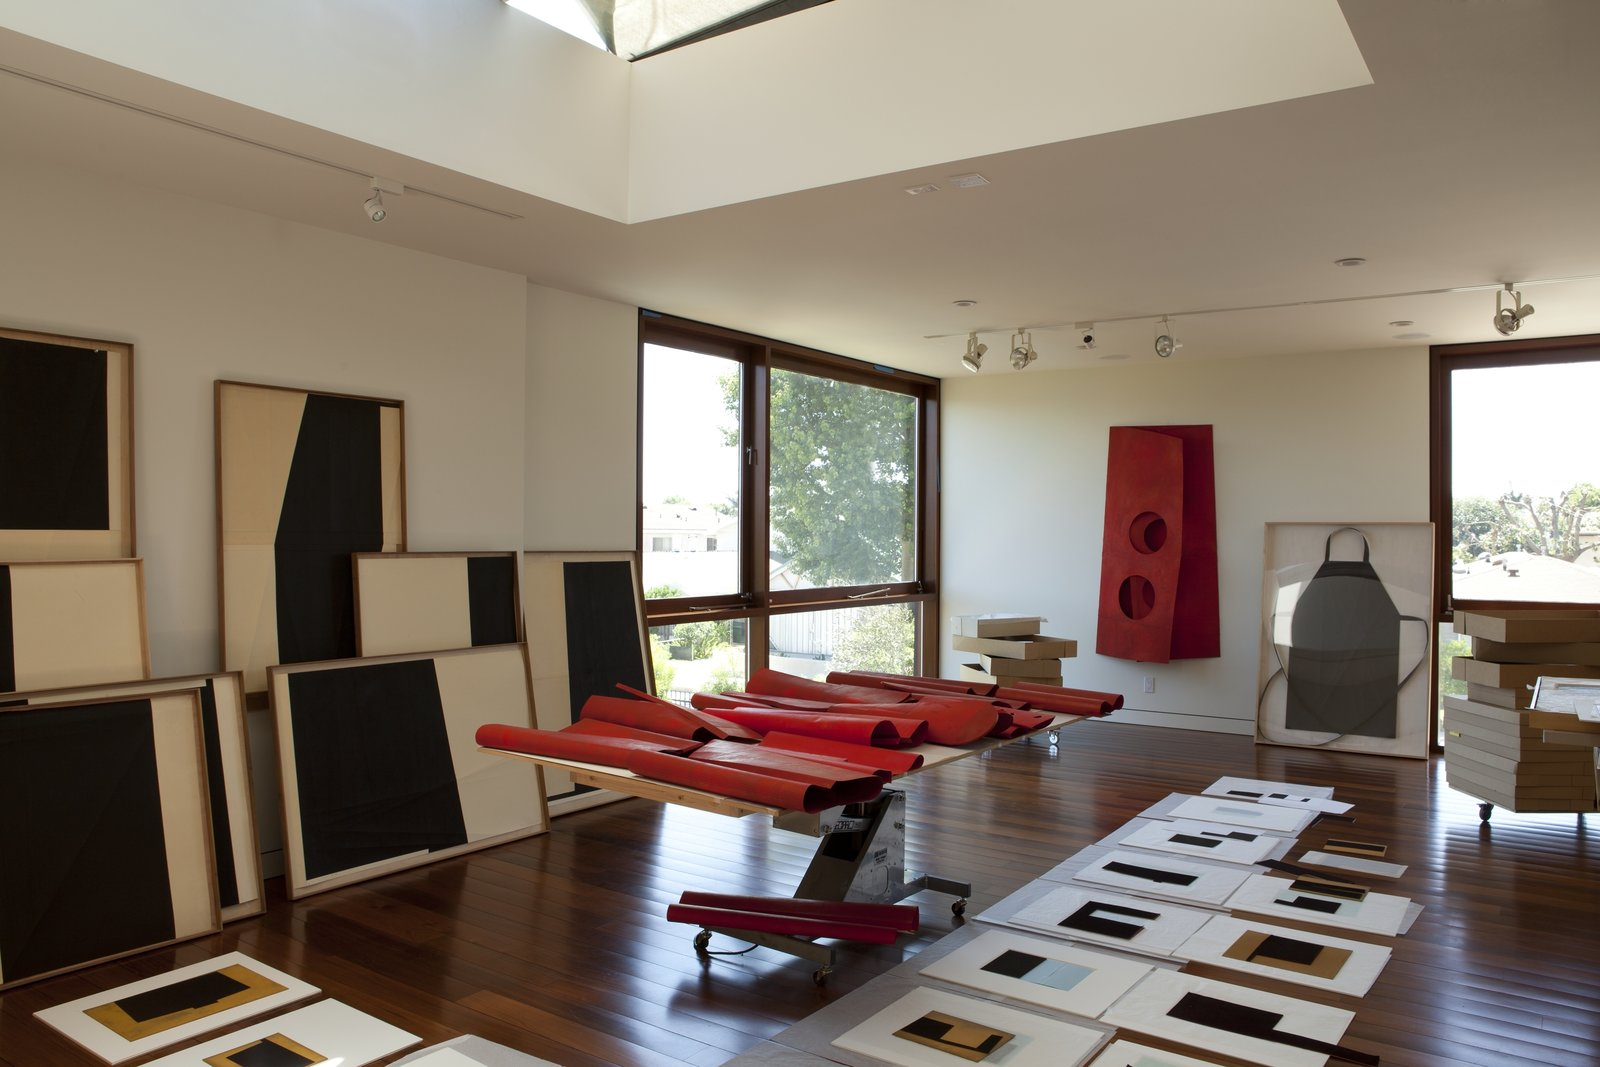 Studio space abounds on the property. The lot is zoned R2, requiring that the two living units have a total of four parking spaces, and the garage can also be converted into an art studio. Live Outside the Box in This Artist's Haven For $3.5M - Photo 8 of 9